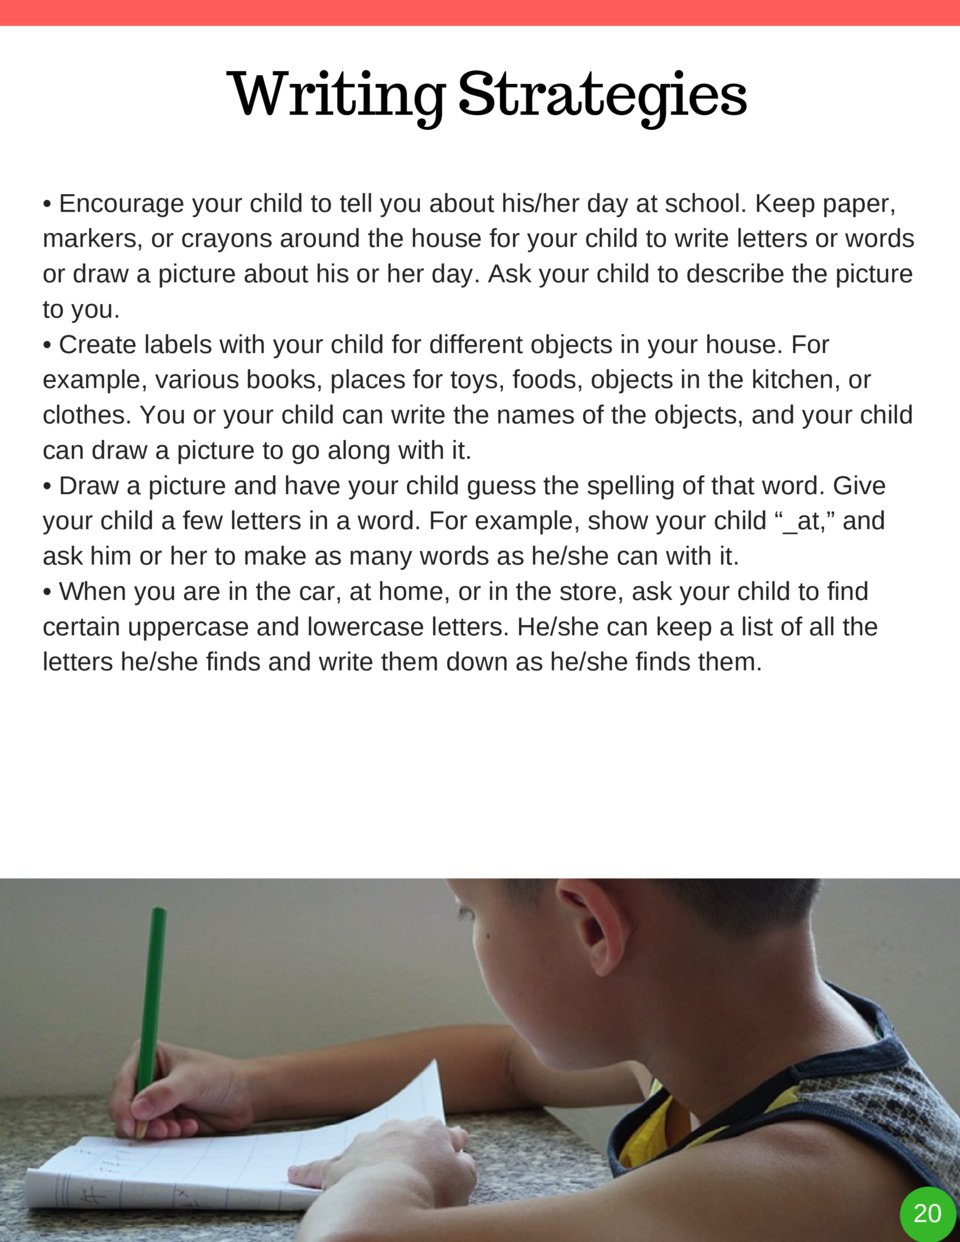 Writing Strategies     Encourage your child to tell you about his her day at school. Keep paper, markers, or crayons aroun...